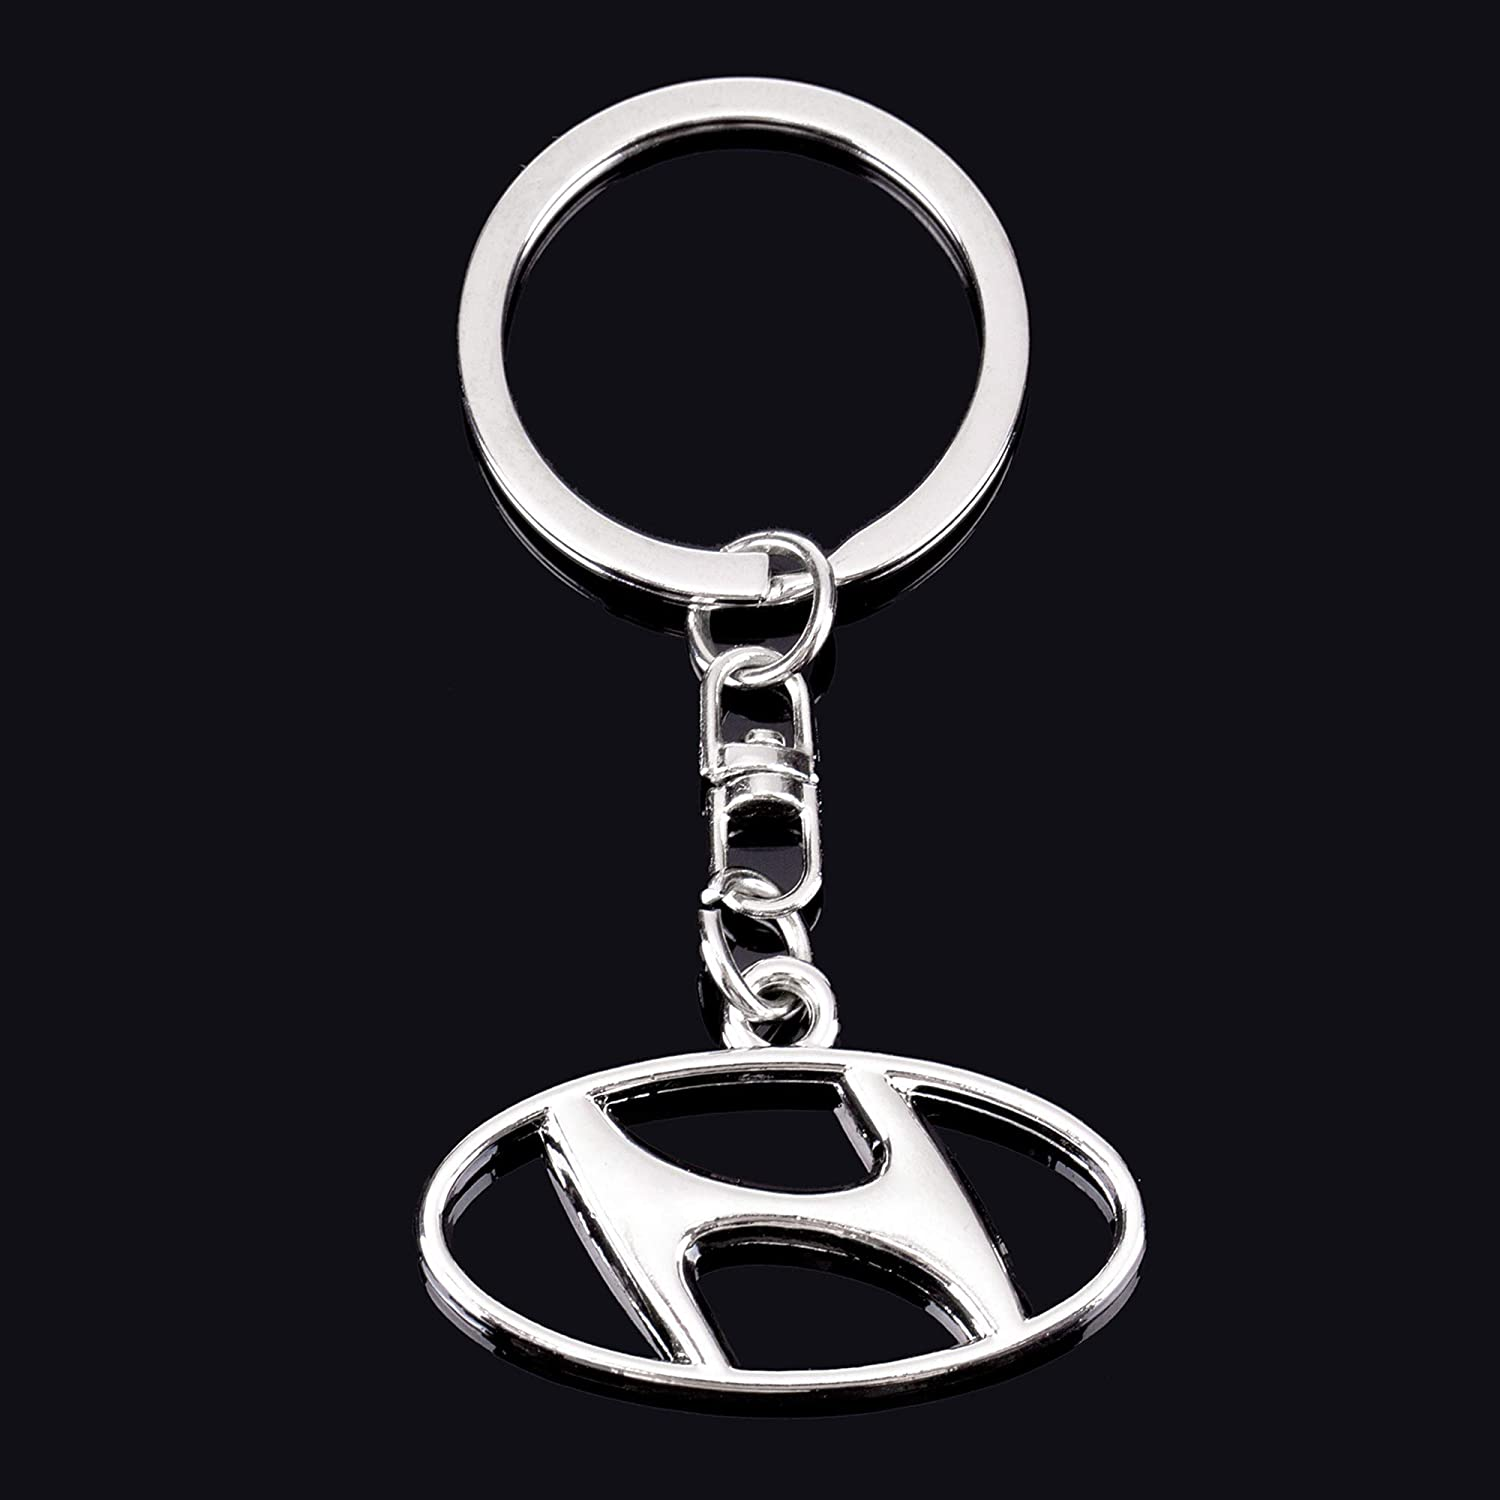 Best for Gifts QZS 3D Chrome Metal Key Chain Key Ring